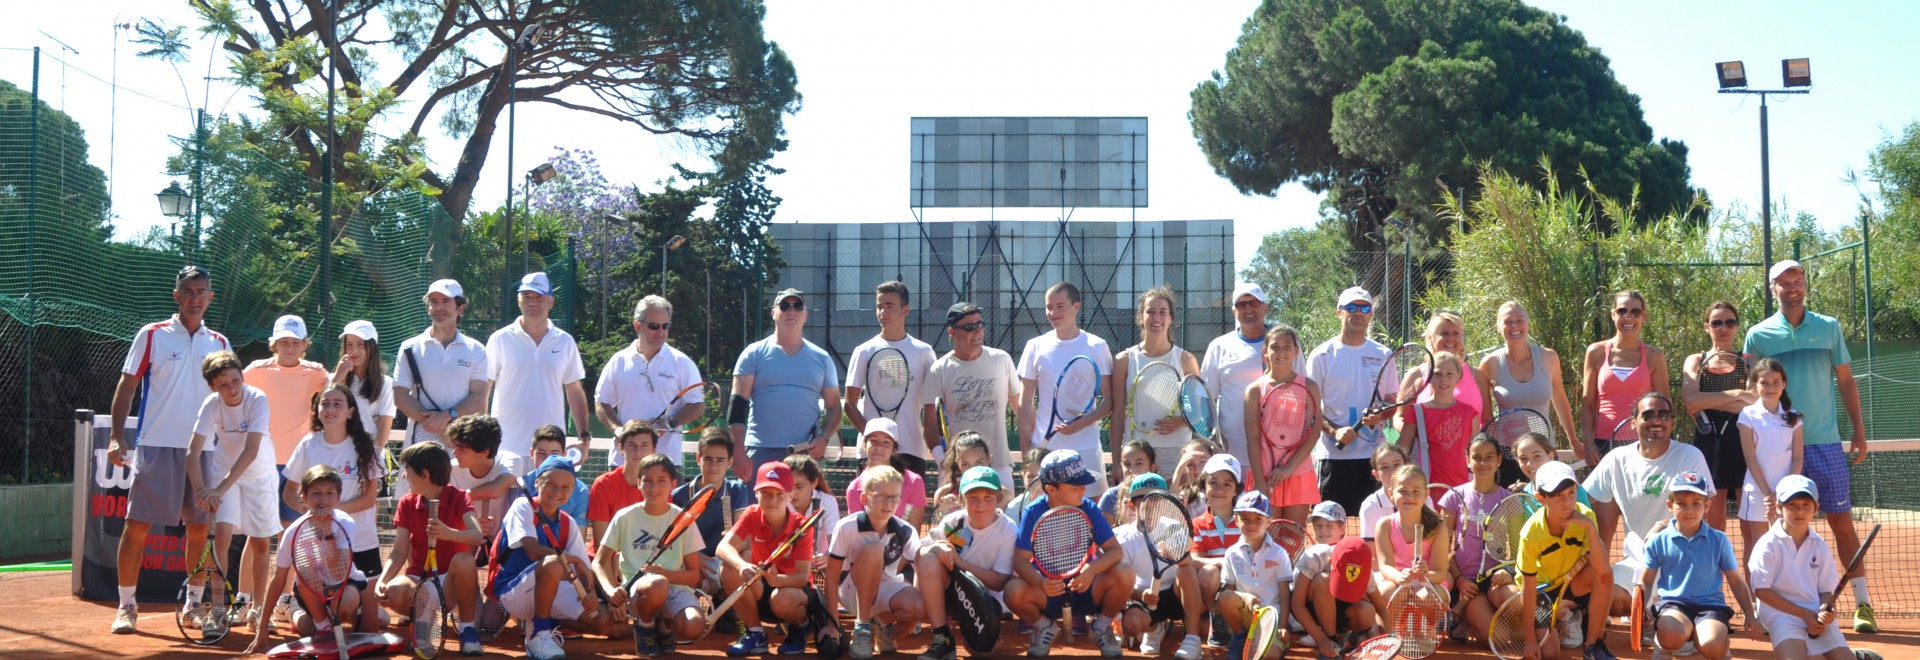 Accommodation and Court Hire Package - Royal Tennis Club Marbella